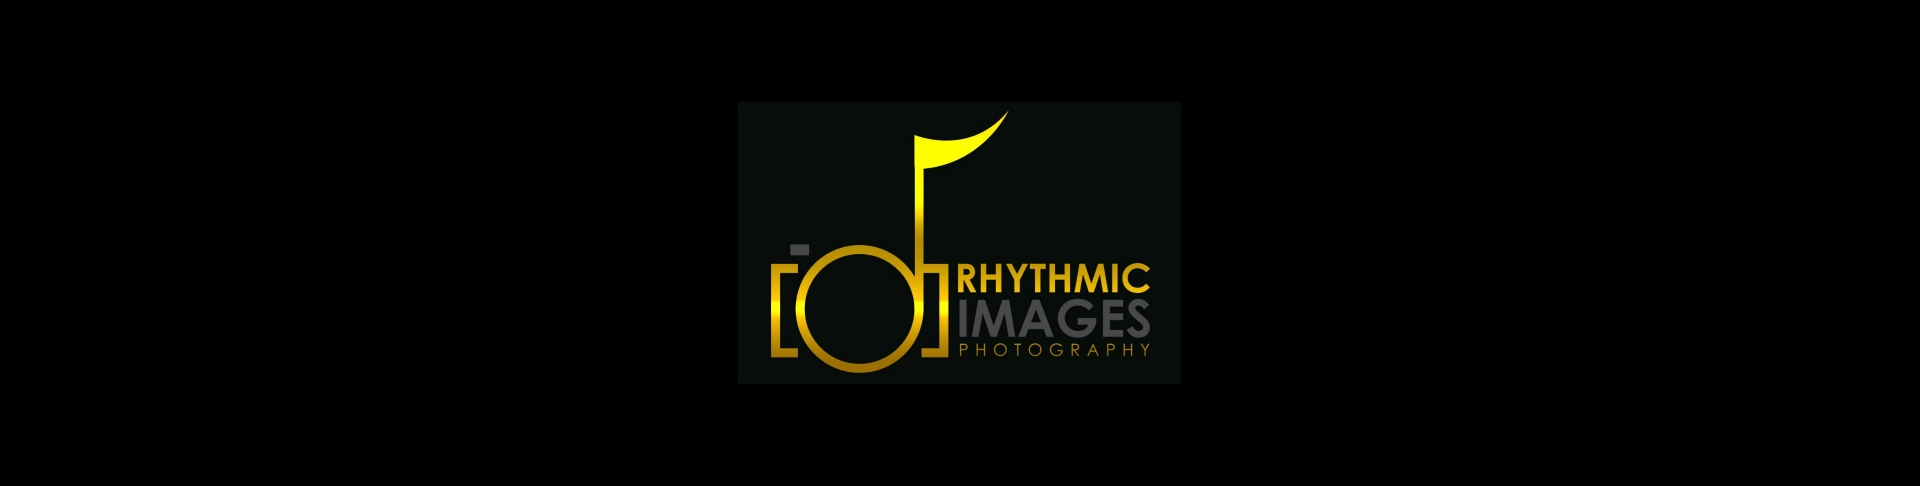 Carolyn Grady (@rhythmicimages) Cover Image